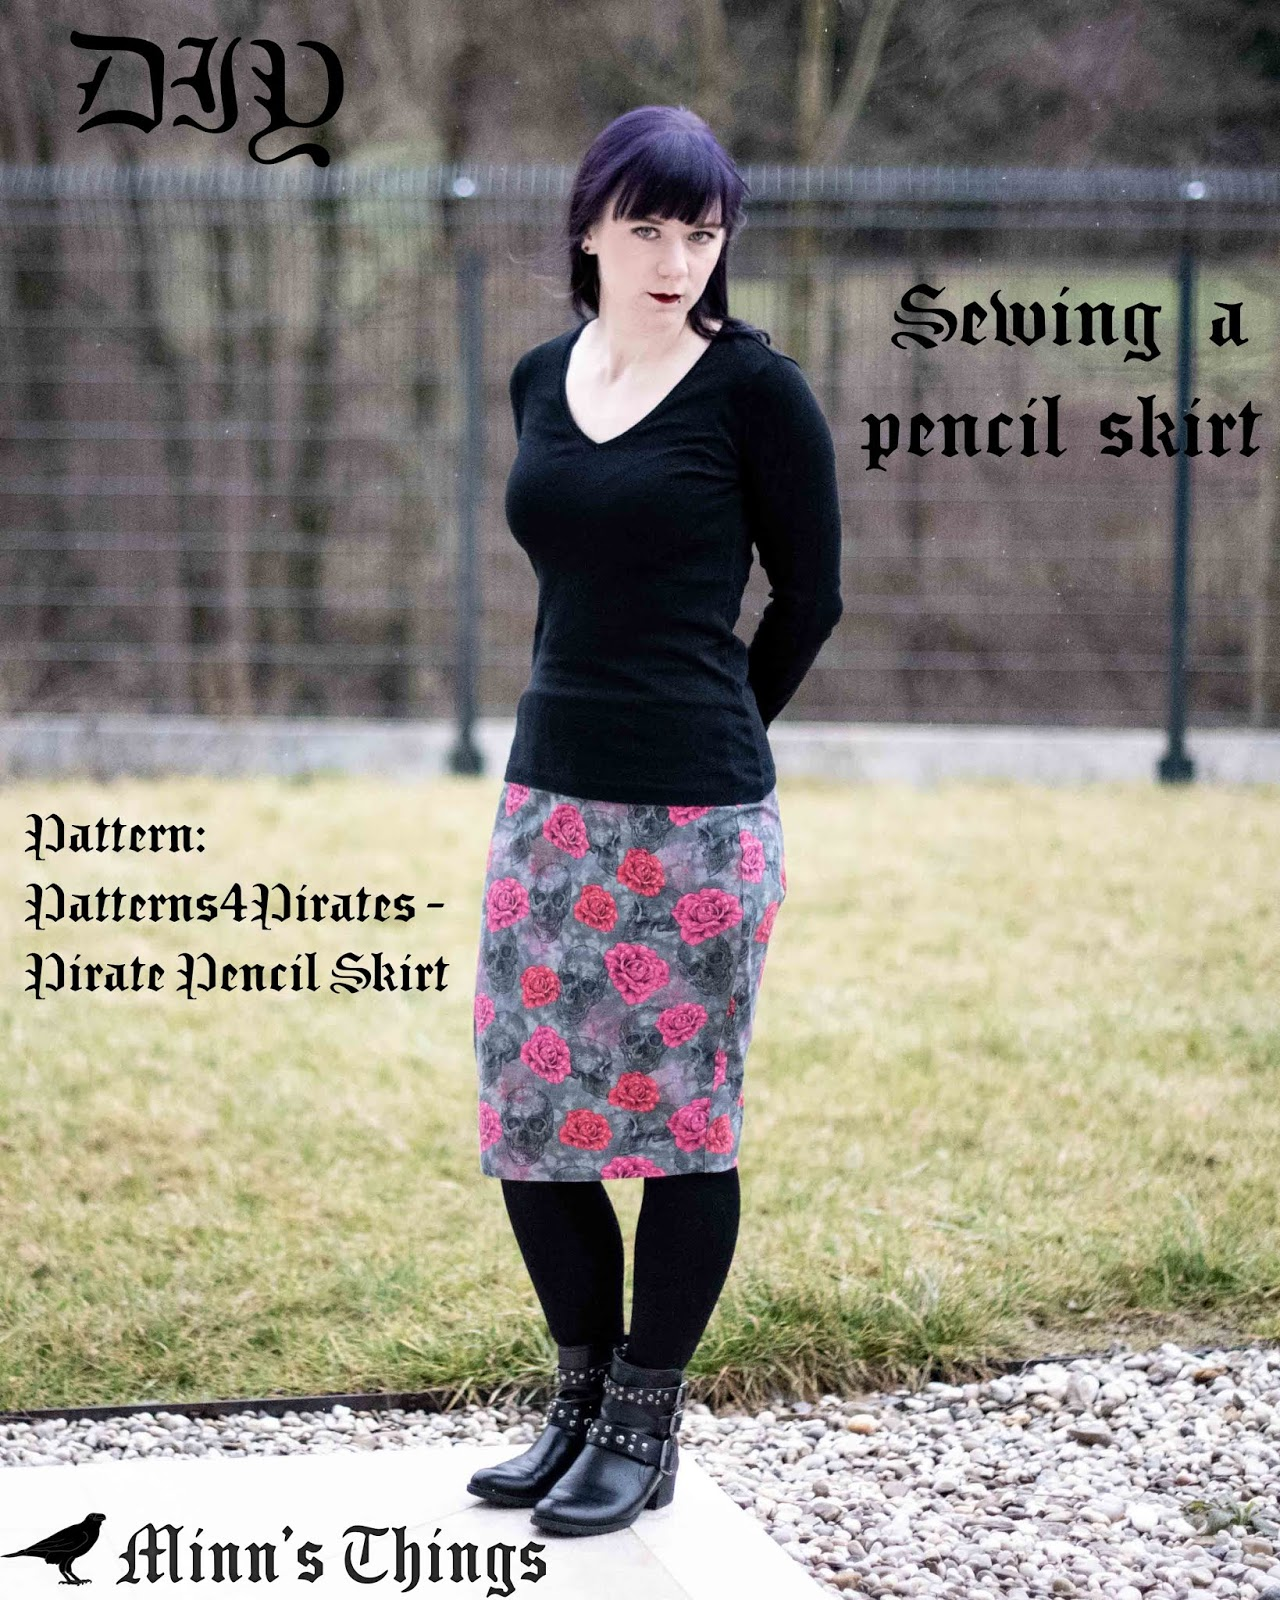 Patterns 4 Pirates Sewing Pattern Pirate Pencil Skirt Skulls'n'Roses by Minn's Things